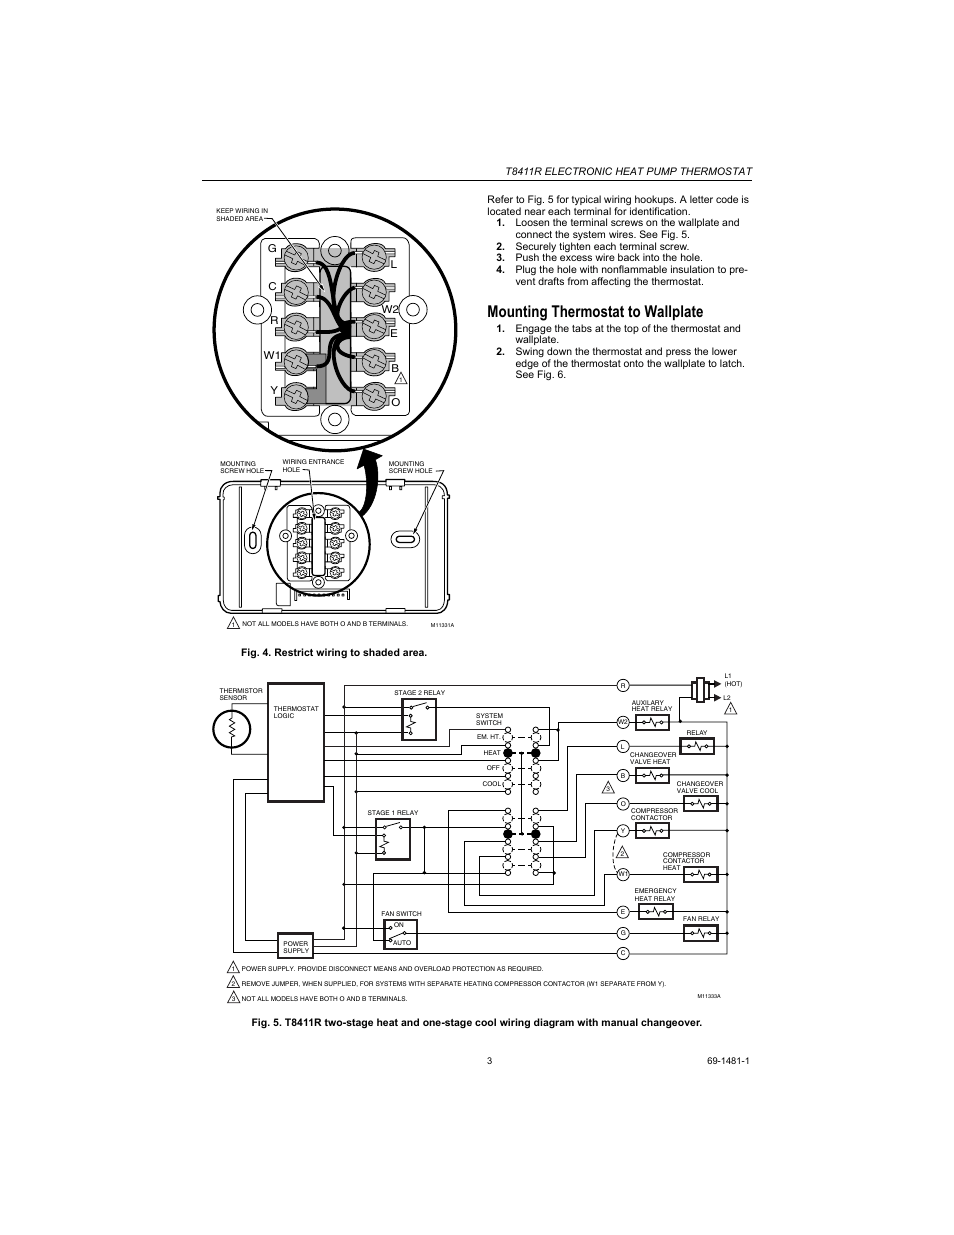 hight resolution of th5220d1003 wiring diagram